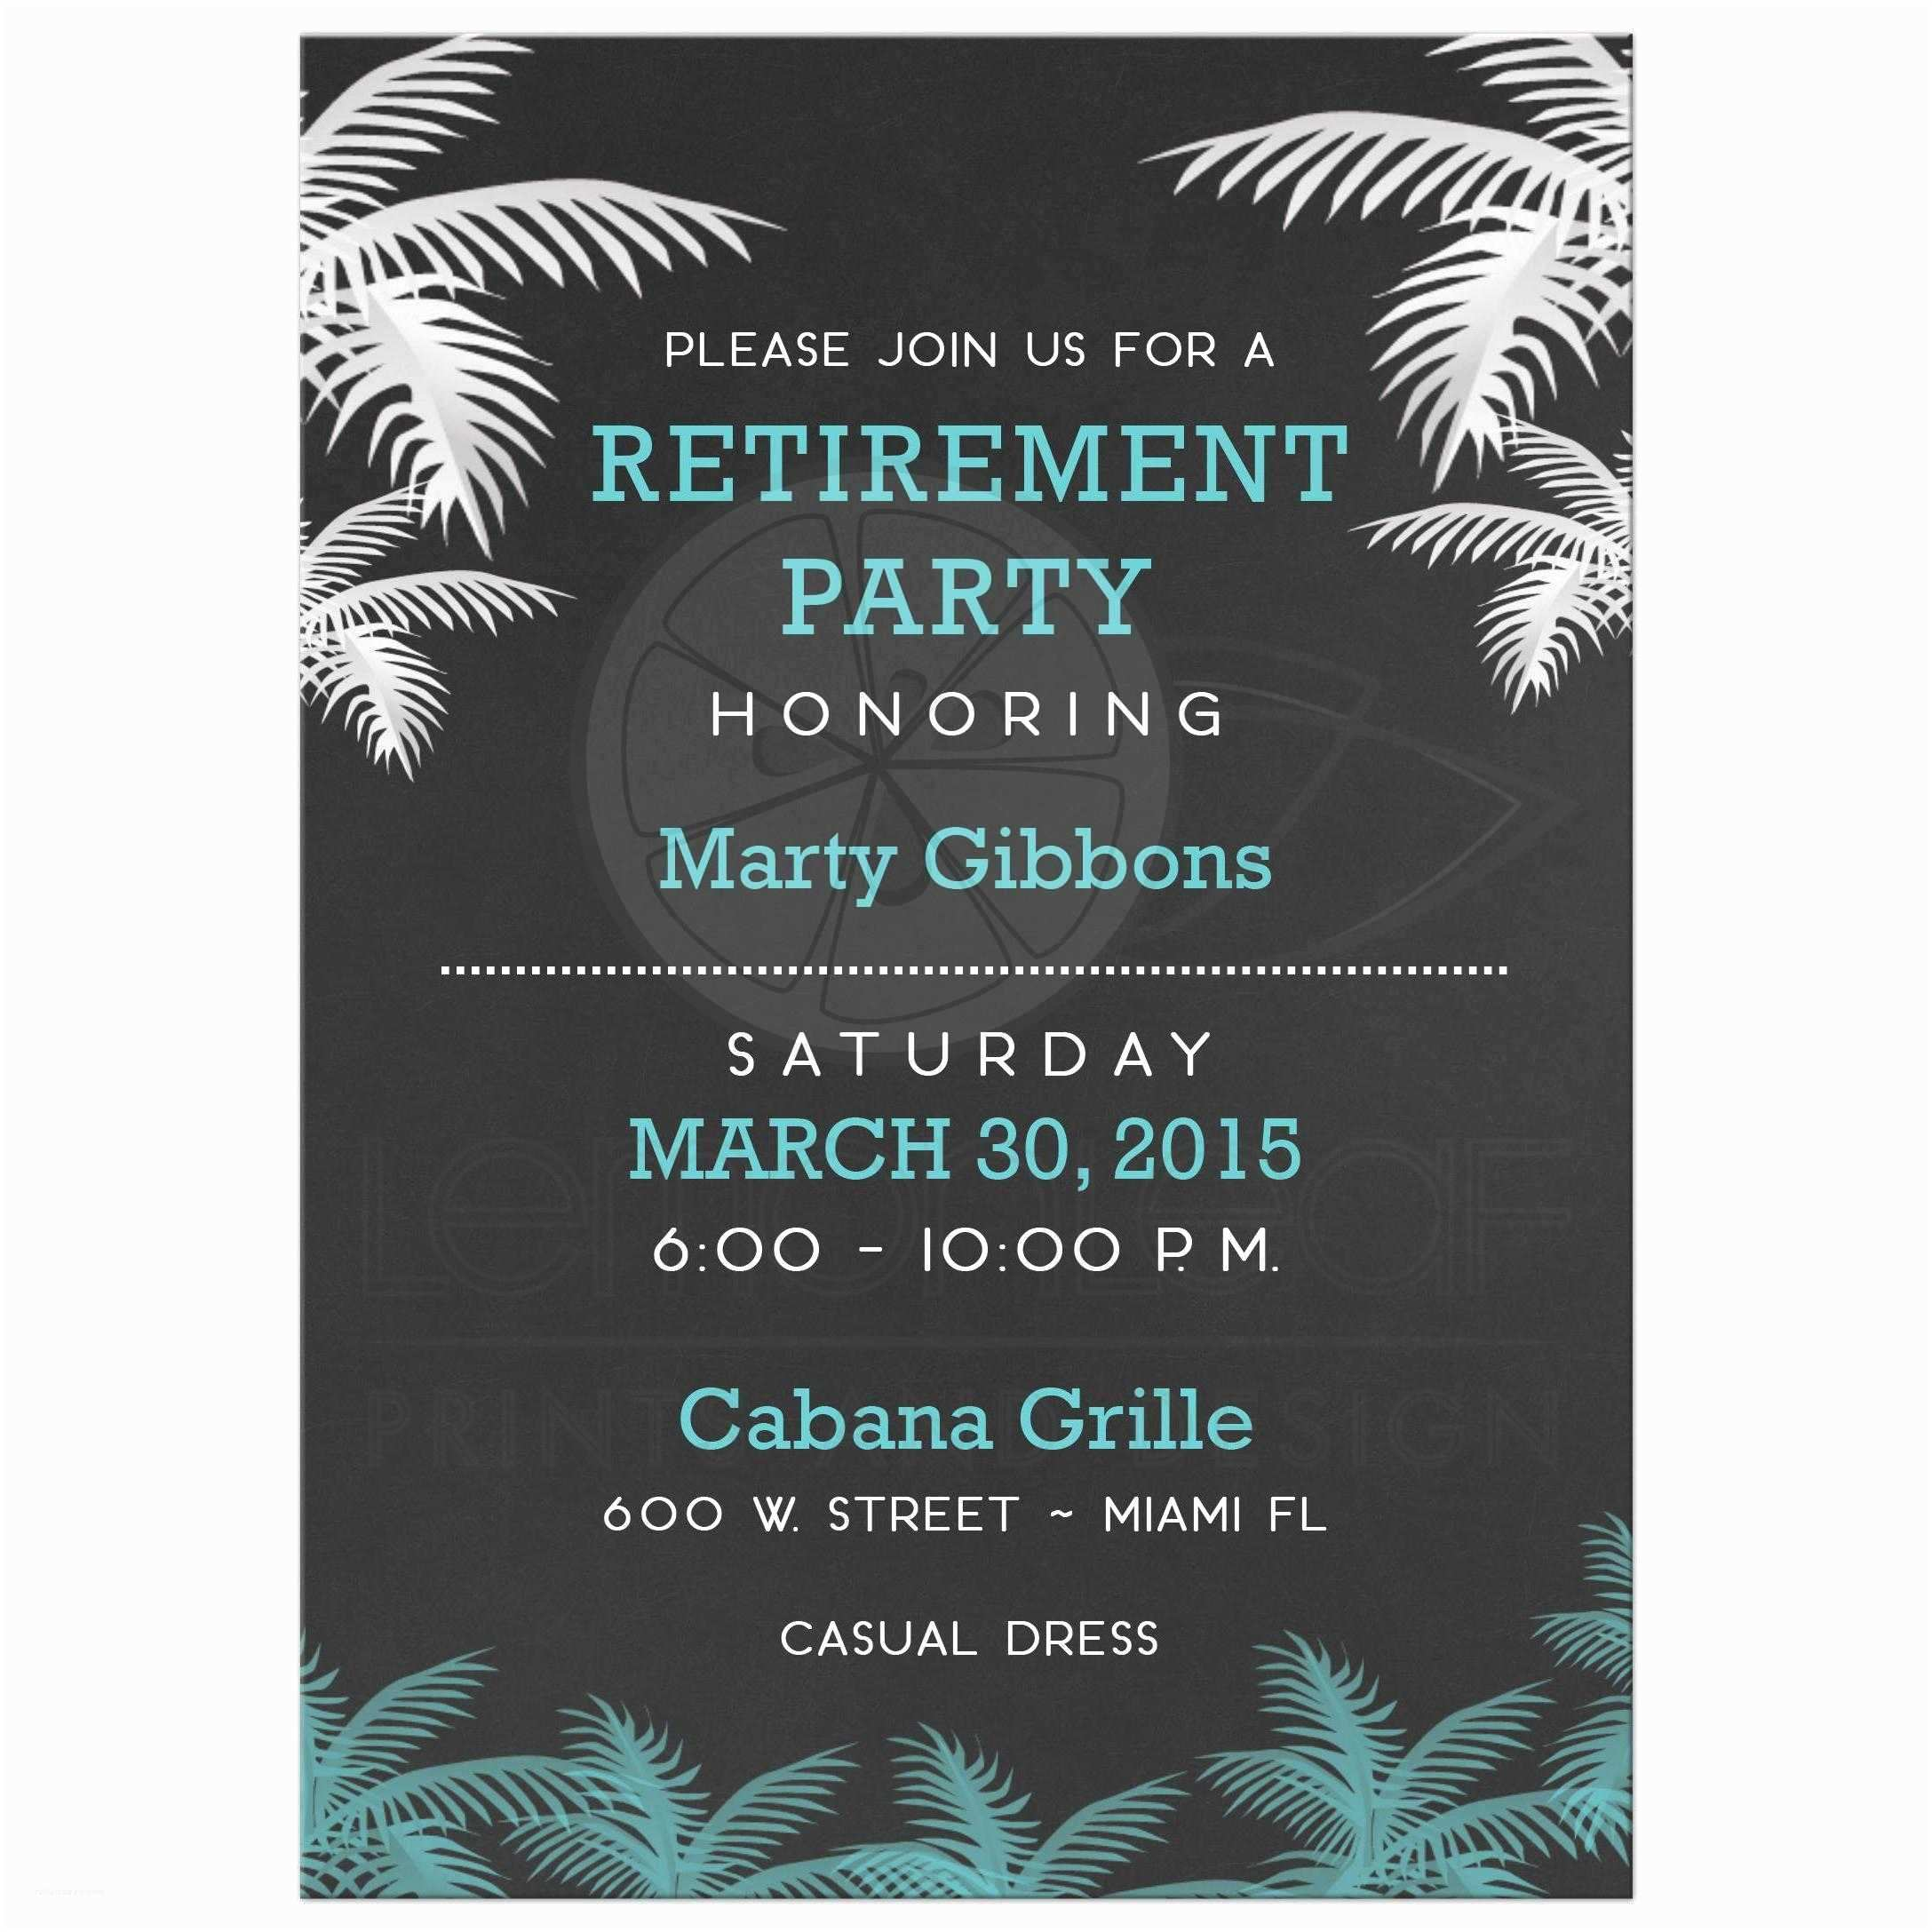 Retirement Party Invitations Retirement Party Invitations – Gangcraft